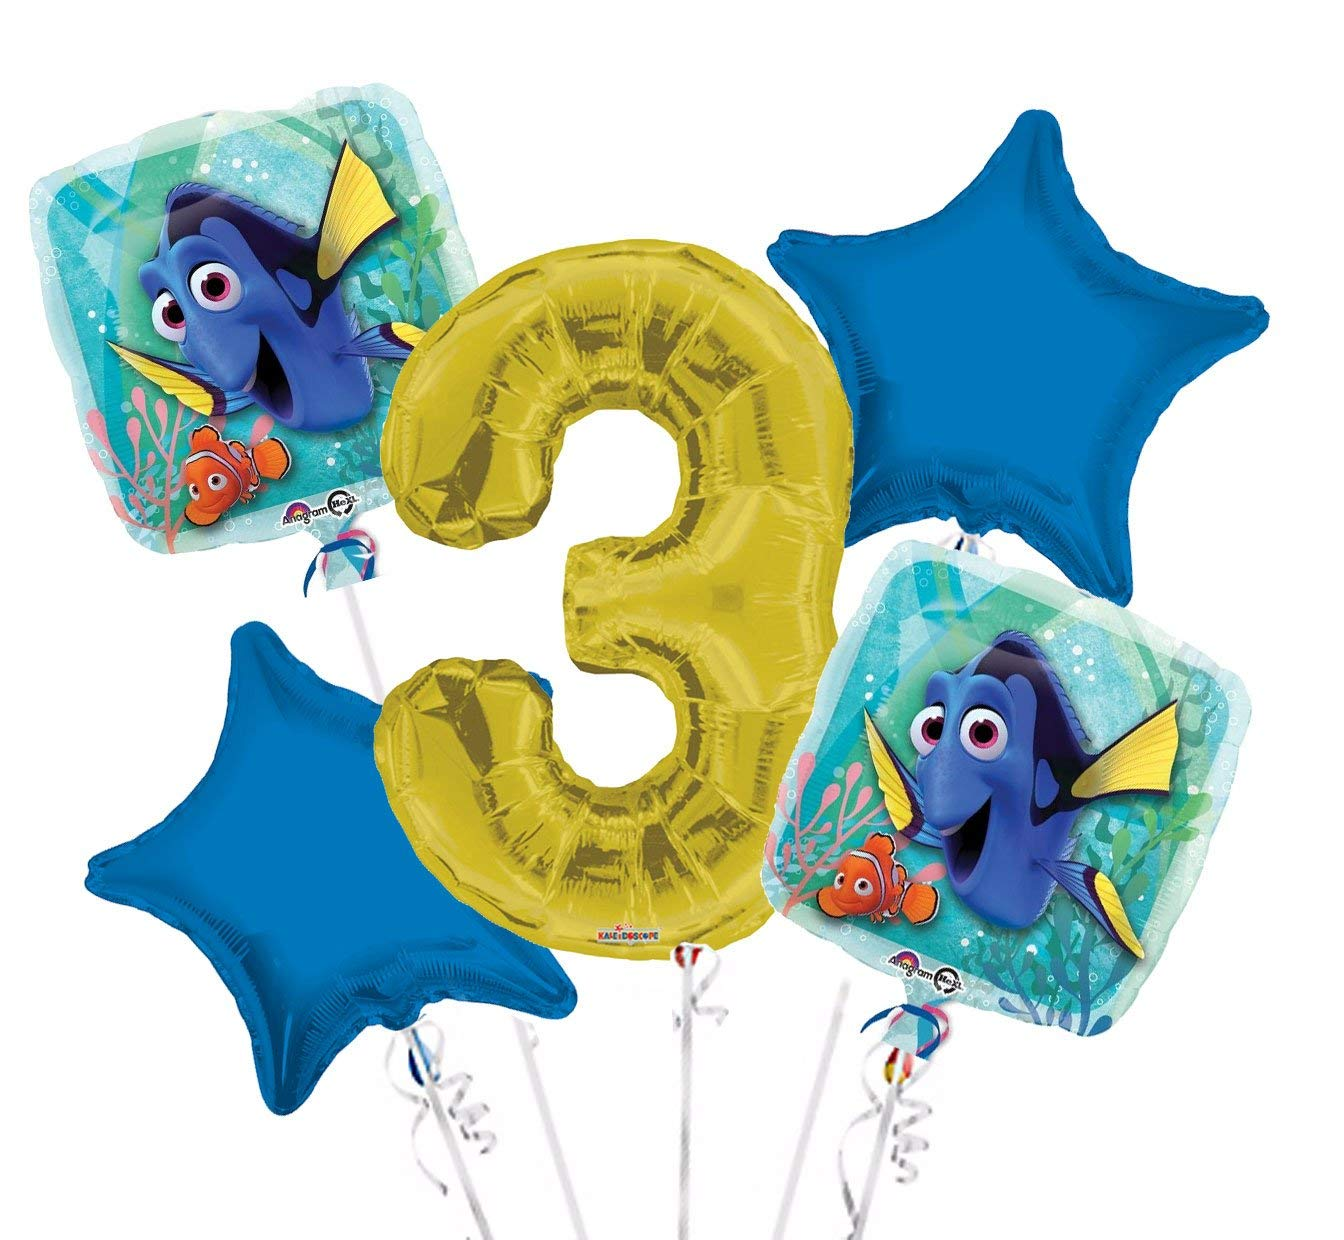 Finding Dory Balloon Bouquet 3rd Birthday 5 pcs - Party Supplies, 1 Giant Number 3 Balloon, 34in By Viva Party